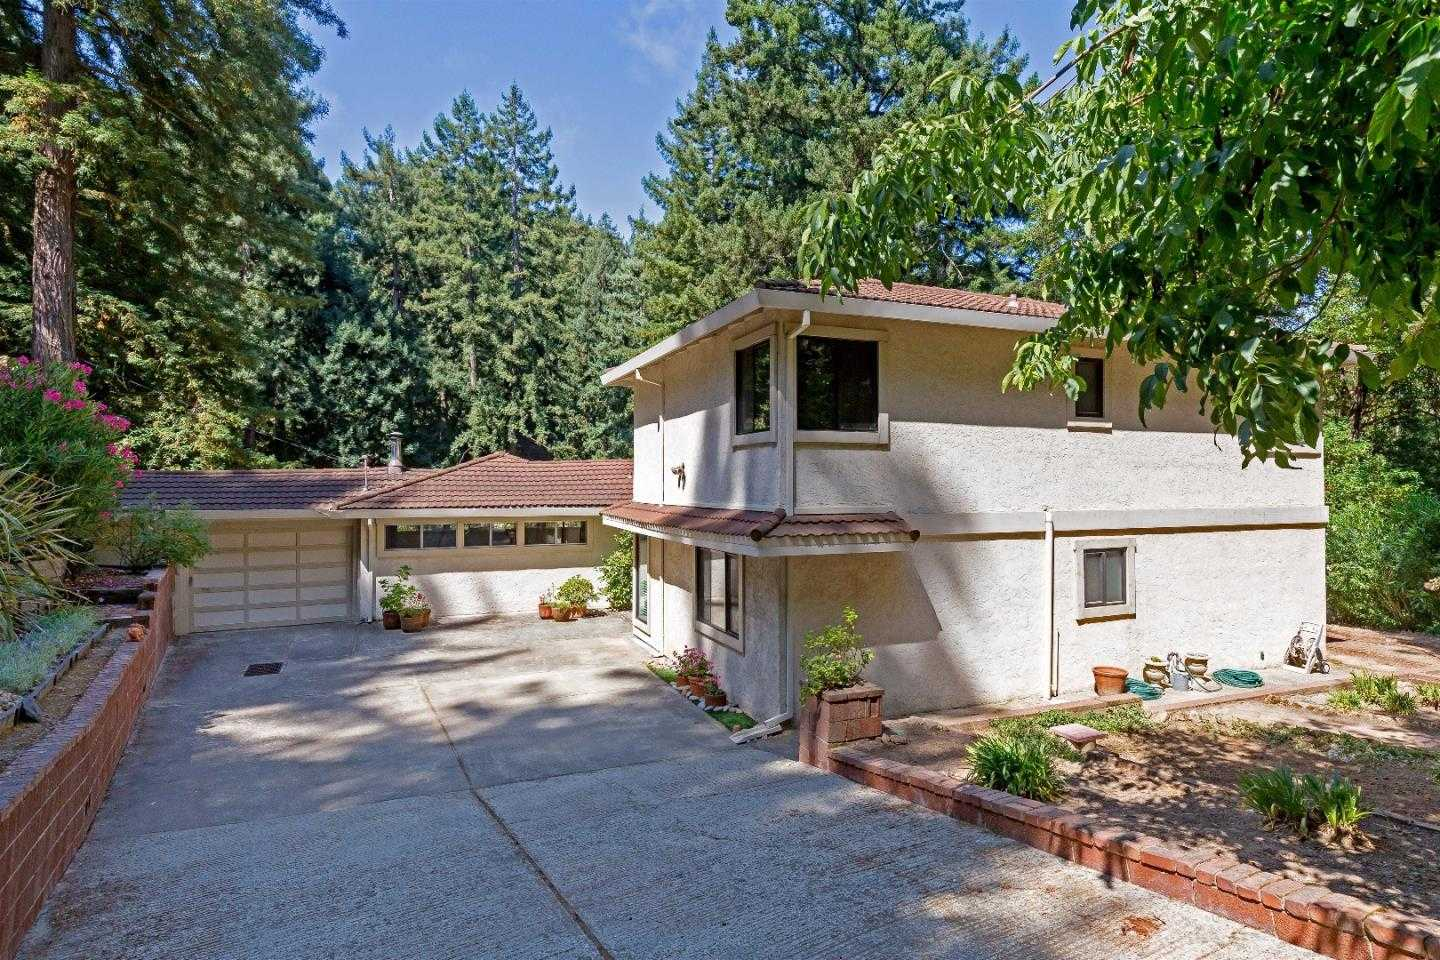 $1,249,000 - 5Br/4Ba -  for Sale in Los Gatos